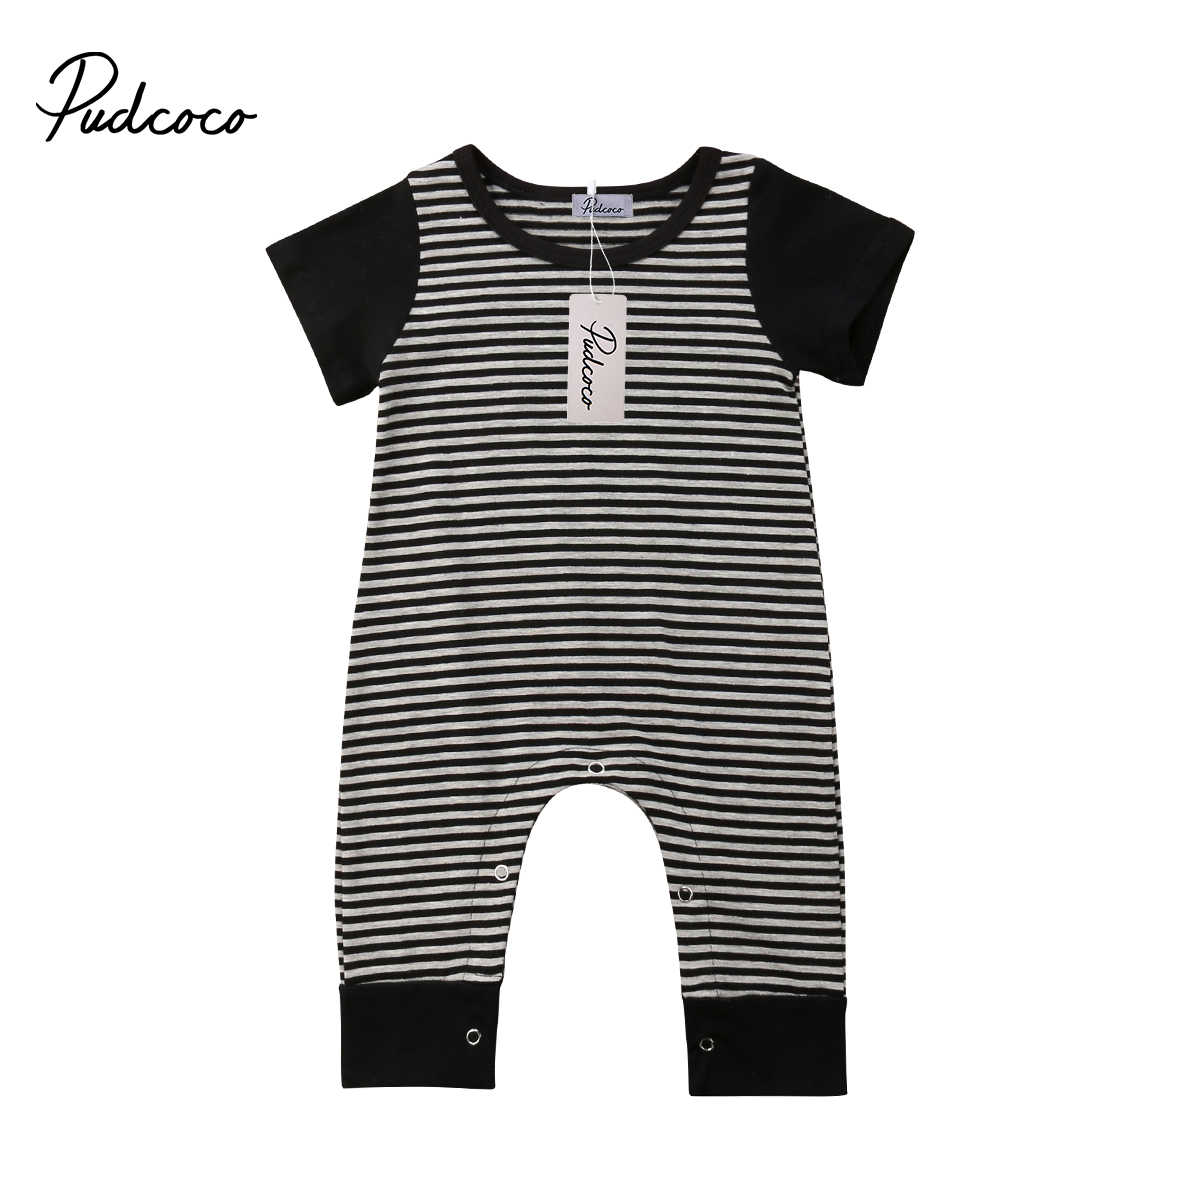 e7417de90b6e 2018 Brand New Newborn Infant Toddler Baby Boy Kid Overall Romper Jumpsuit  Striped Short Sleeve Clothes